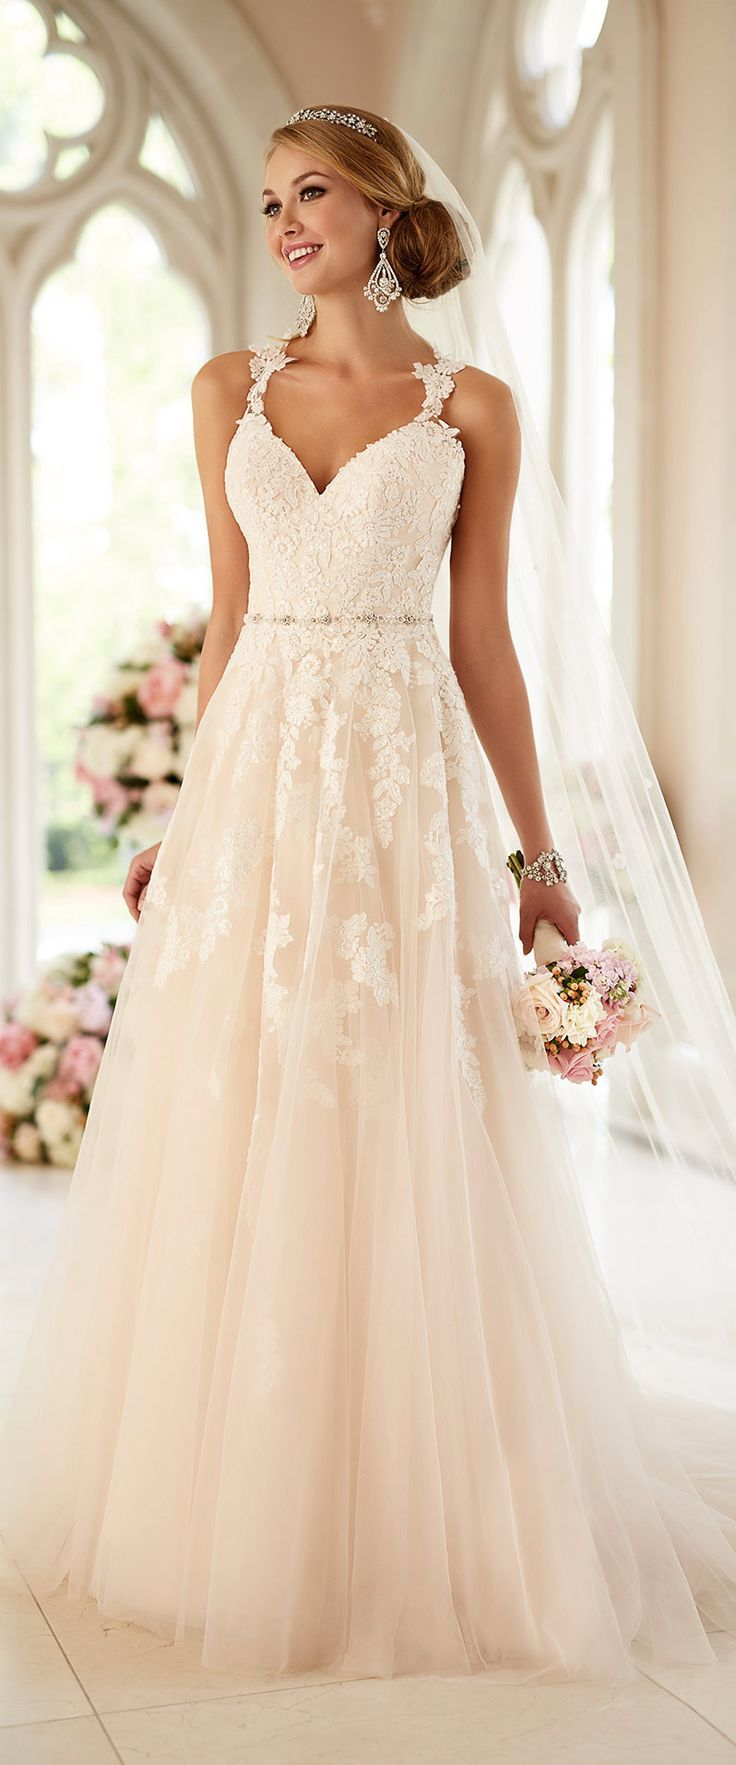 Beaded Lace Makes Up The Ed Bodice Of This Breathtaking A Line Wedding Gown From Stella York Tulle Skirt Boasts Sprinklings Embroidered